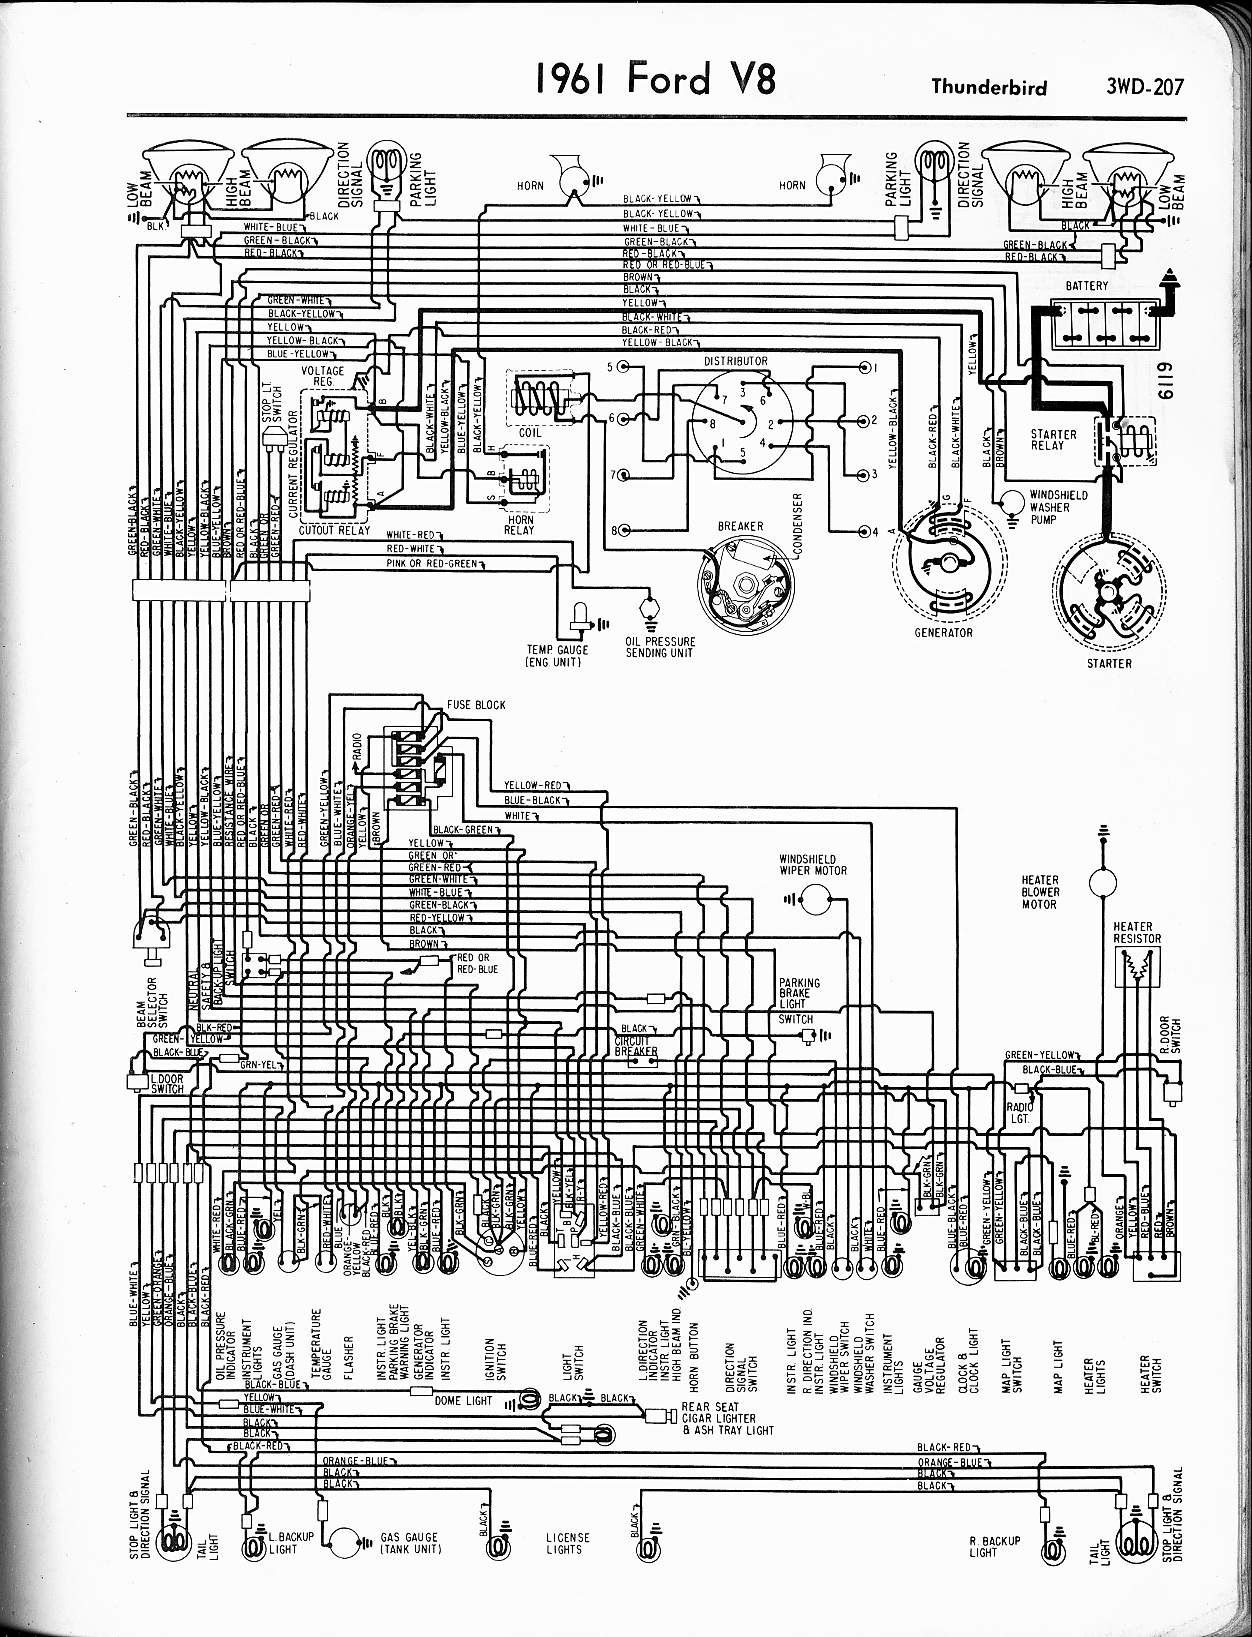 57 65 Ford Wiring Diagrams 1955 Horn Diagram 1961 Thunderbird